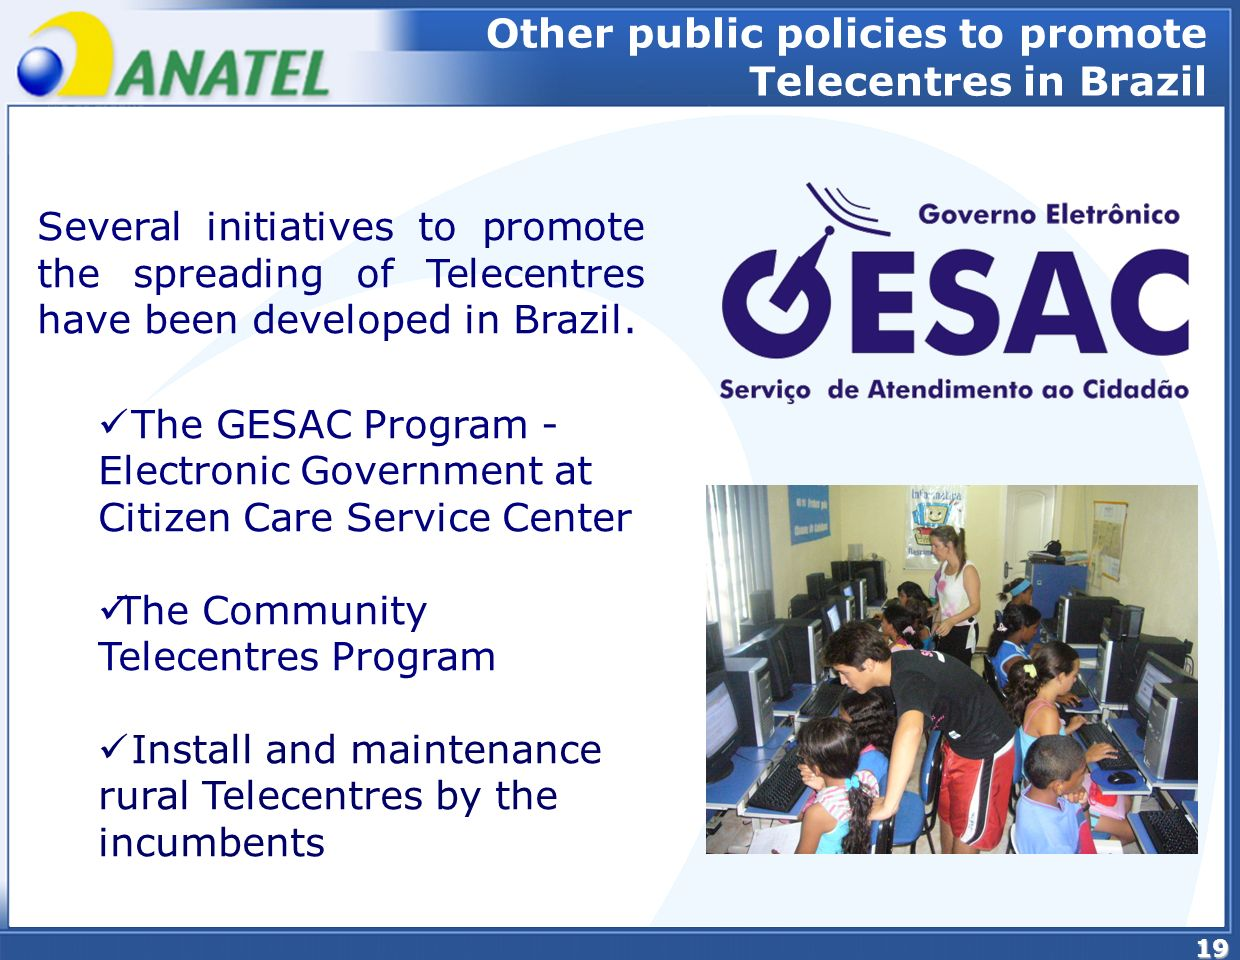 19 Other public policies to promote Telecentres in Brazil Several initiatives to promote the spreading of Telecentres have been developed in Brazil.